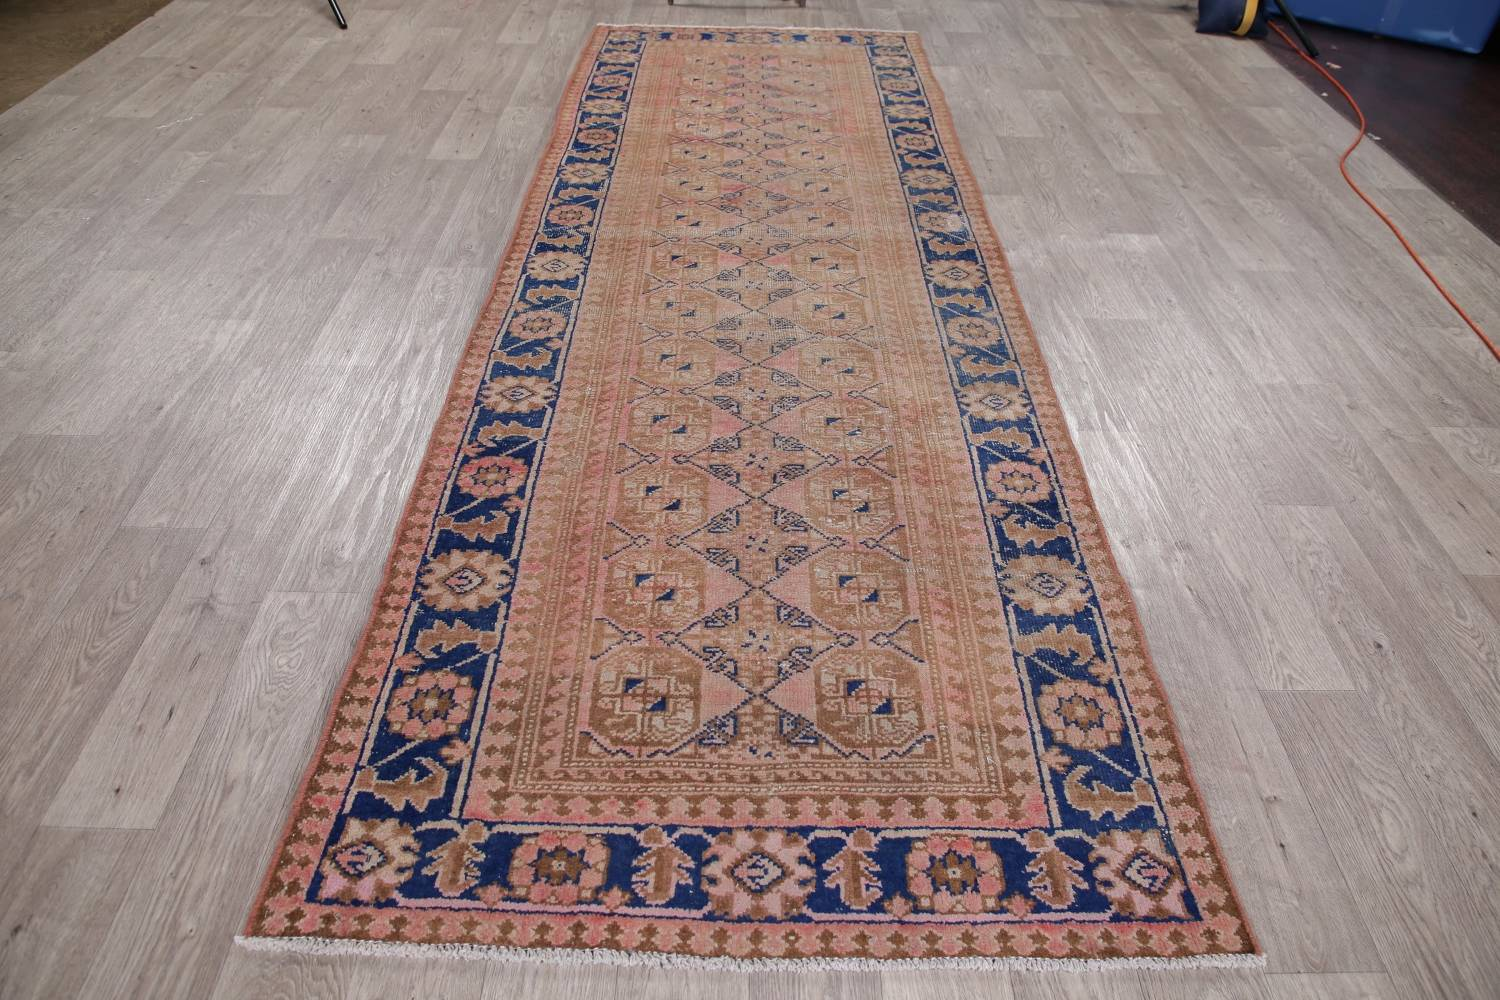 Antique Muted Distressed Malayer Persian Runner Rug 4x11 image 18